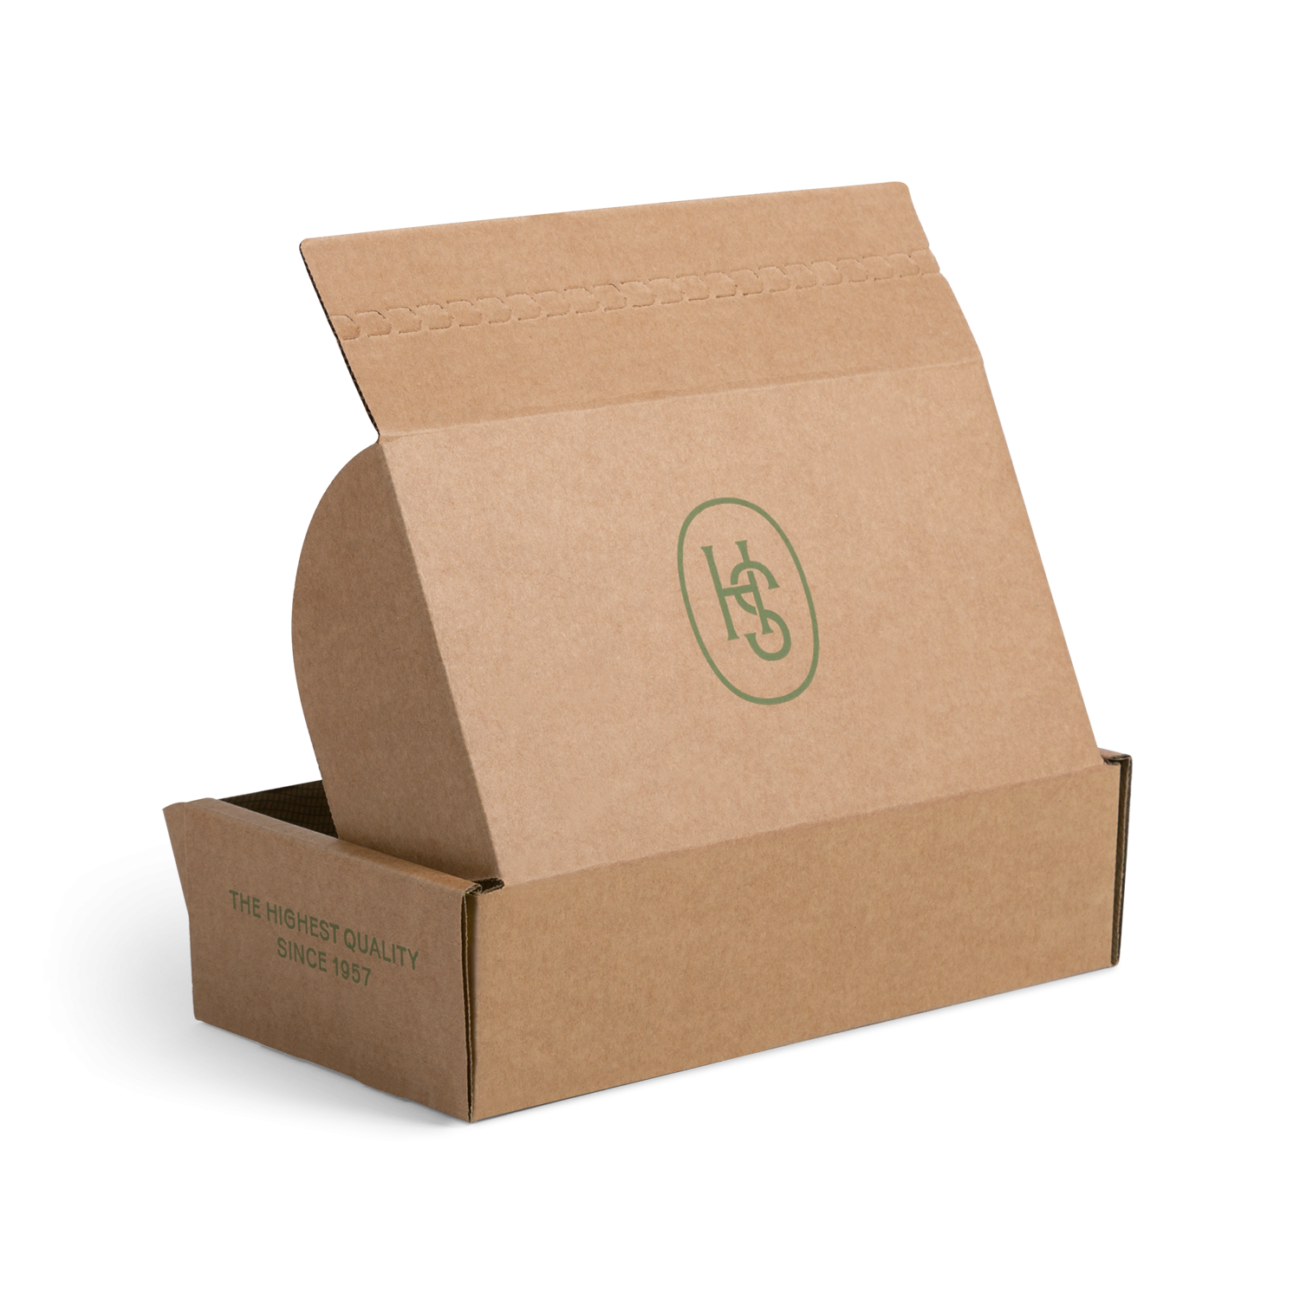 Custom roll end tuck front corrugated mailer box with roll end base, dust flaps, tear strip, adhesive strip. Flexography on natural kraft liner.